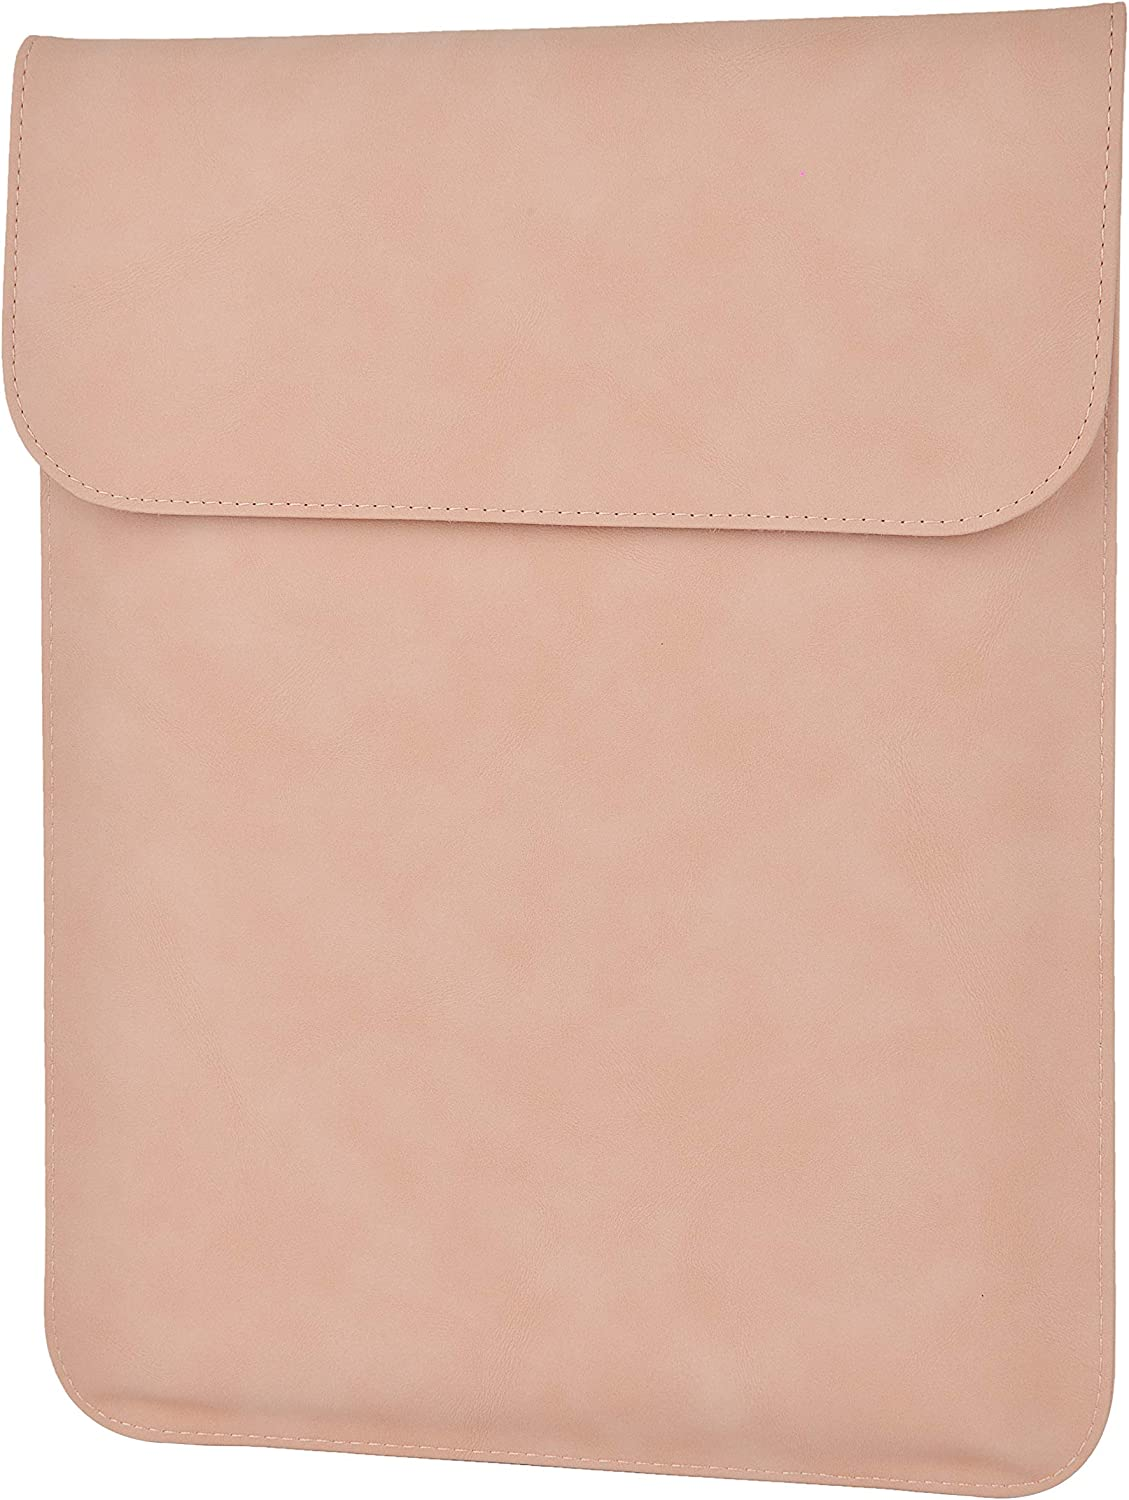 LuvCase Laptop Suede Leather Flap Envelope Sleeve Pouch Case Compatible MacBook Pro 15-16 Inch, A2141/A1707/A1990/A1398/A1286, Chromebook, Acer, Thinkpad HP Notebook (Pink Magnetic Sleeve (Vertical))